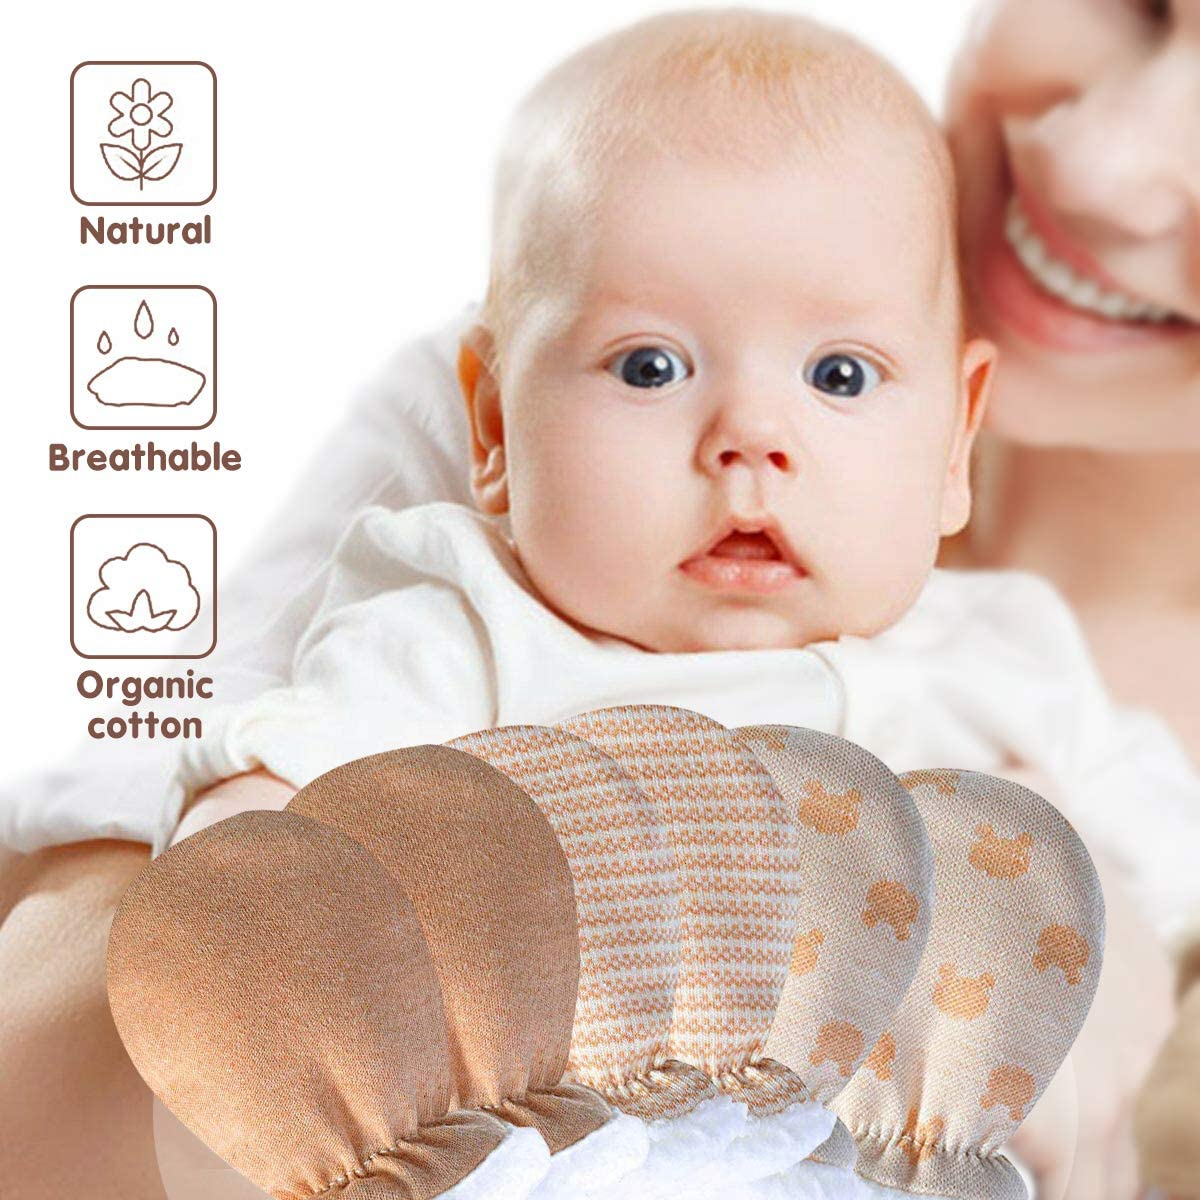 Cotton Scratch Mits Baby Essentials for Newborn Boy Girl 3 Pairs Baby Mitten Gloves-Baby Anti Scratch Mittens Gloves Wool Lined Unisex Mitts ideal Gifts for 0-12 Months Infant Toddler